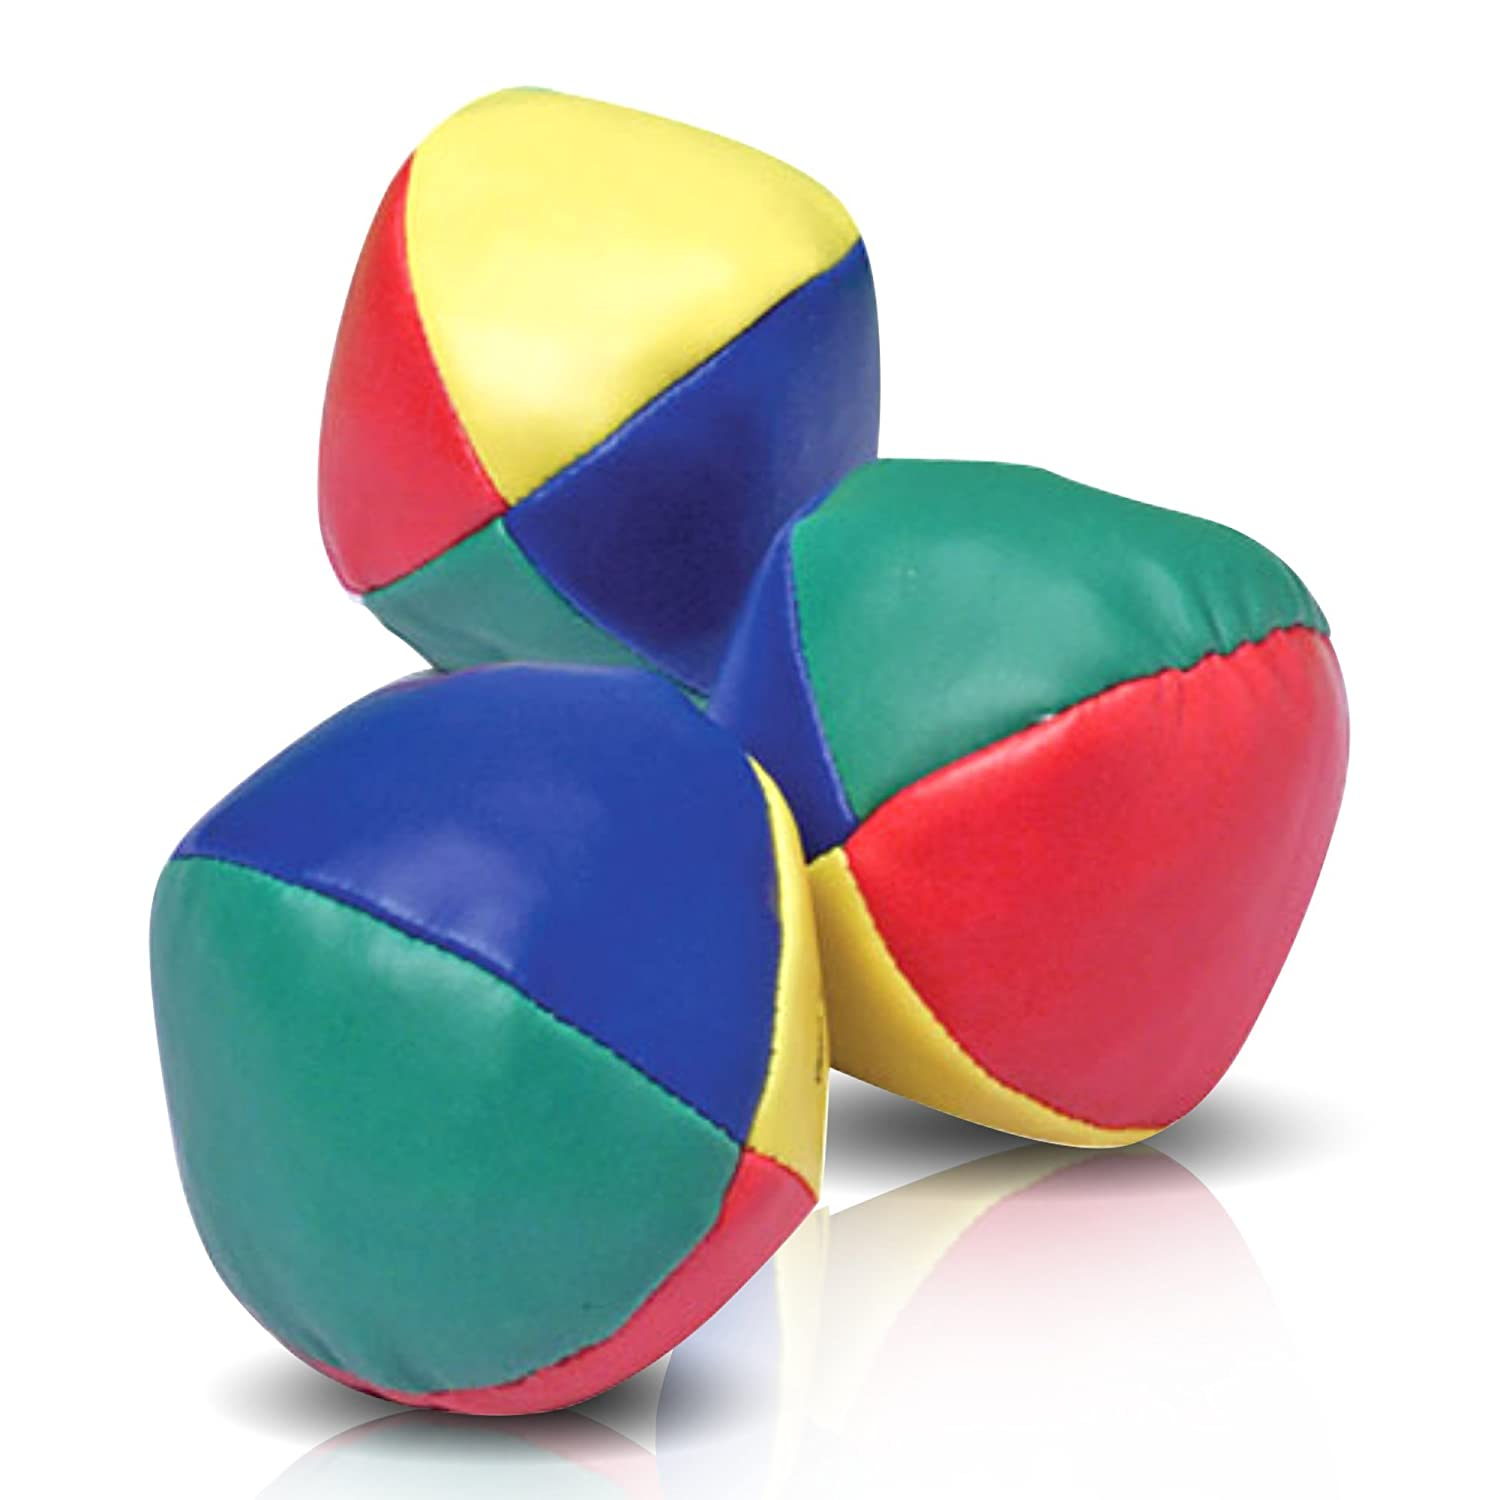 ArtCreativity Juggling Balls Set for Beginners Set of 3 | Durable Juggle Ball Kit | Soft Easy Juggle Balls for Kids and Adults Multi Colored